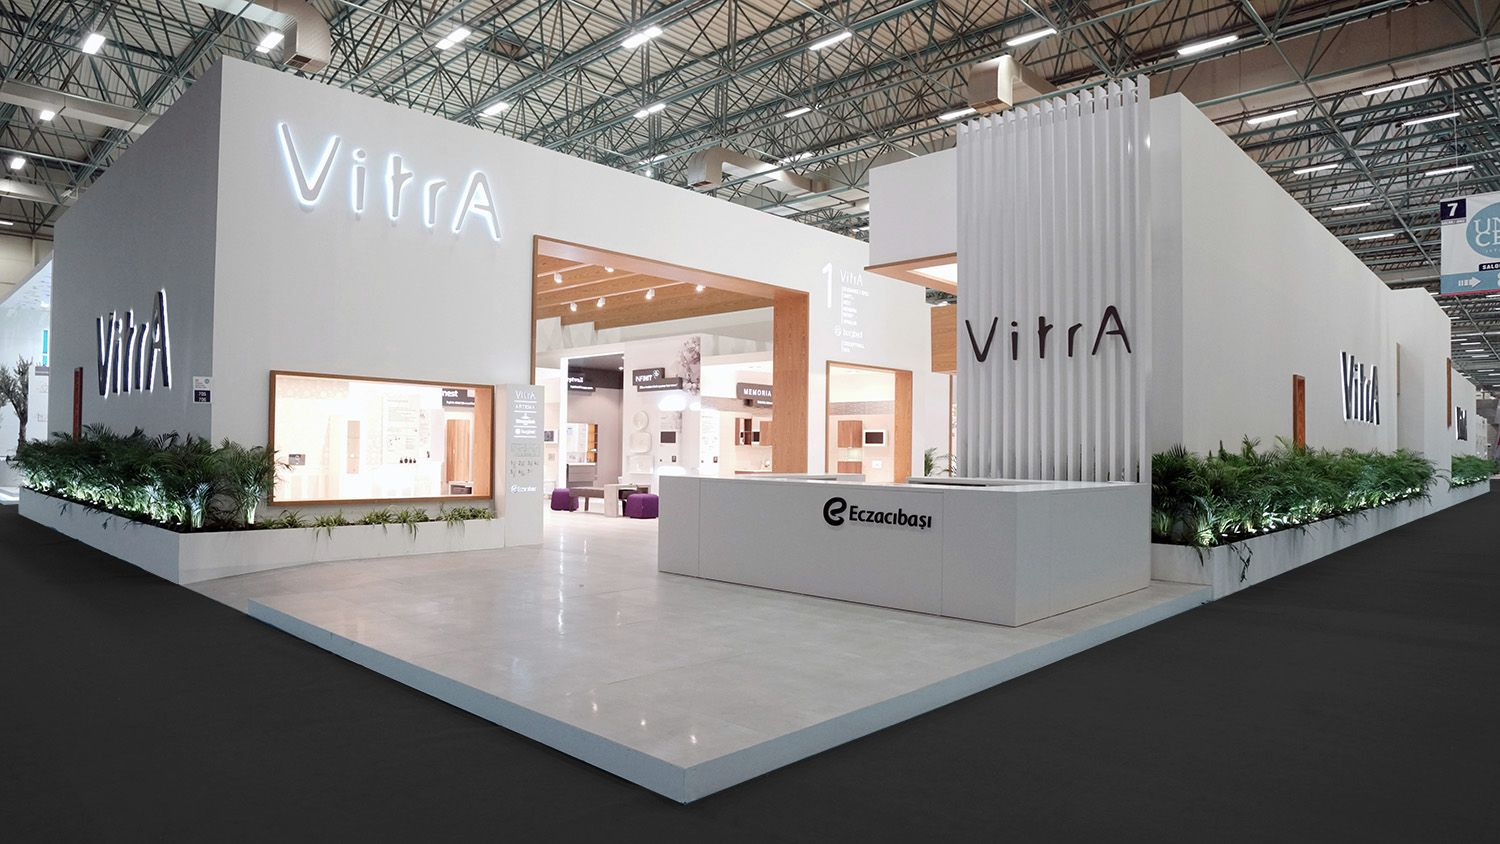 Glass Shed Exhibition Stand Design : Vitra unicera by neo design exhibition